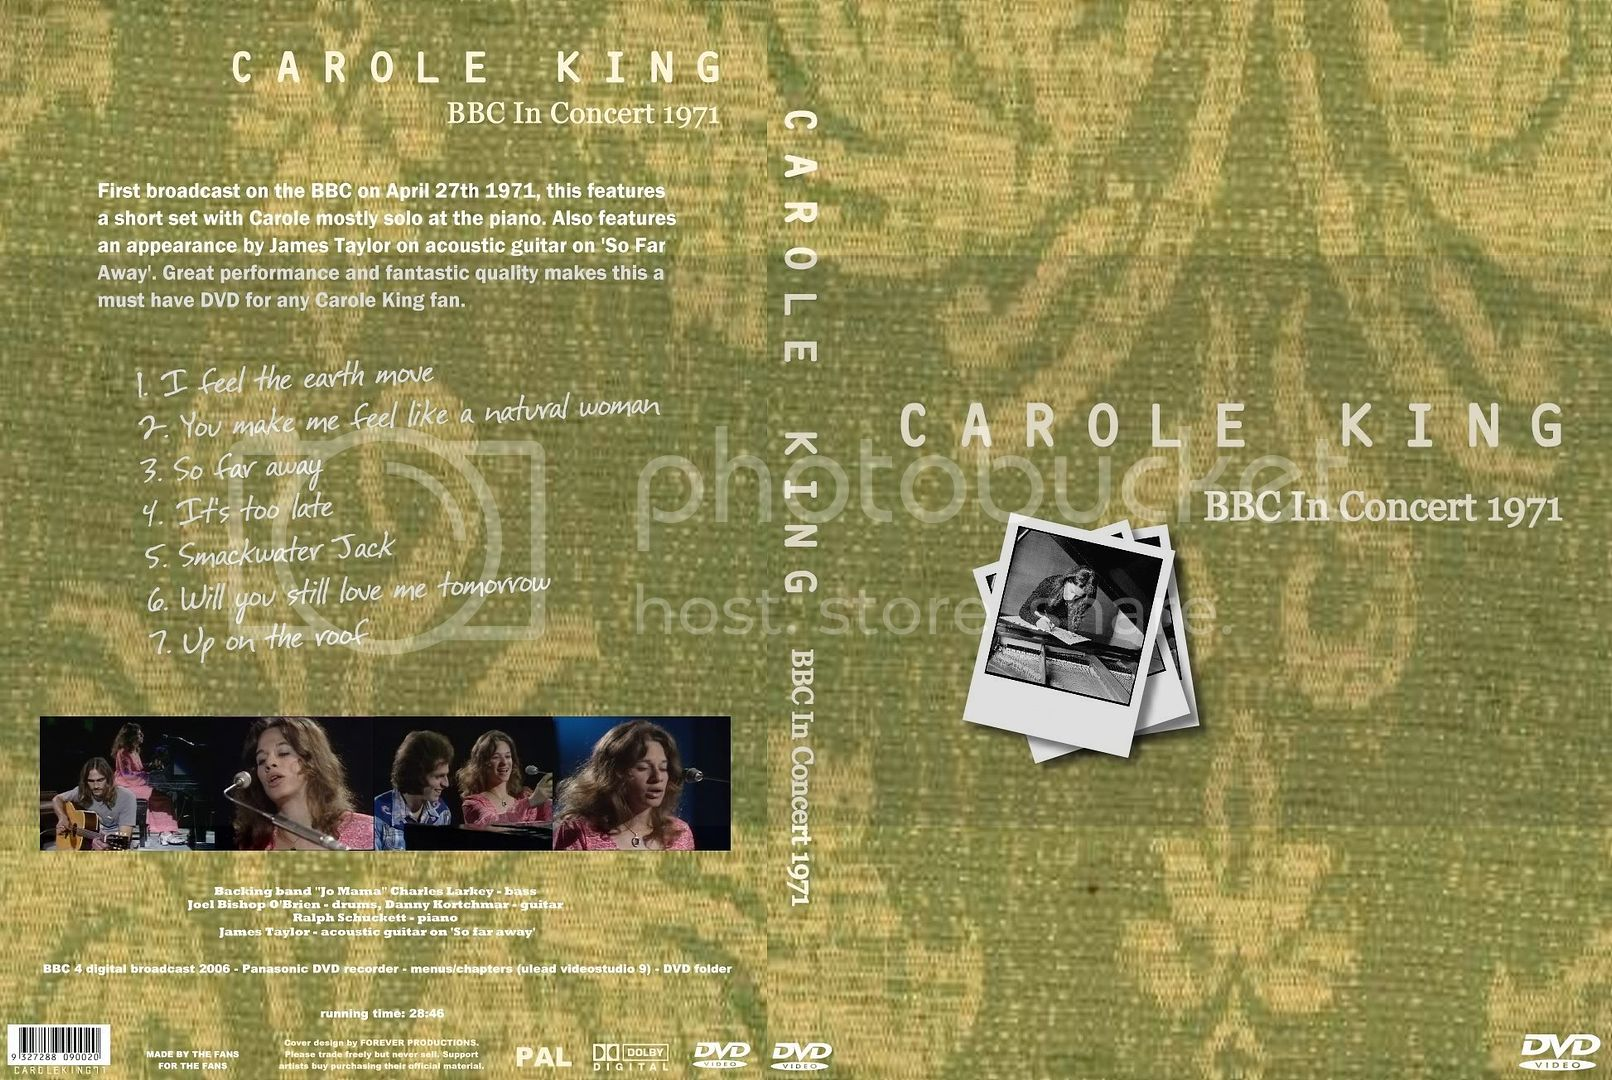 Carole King BBC In Concert Image